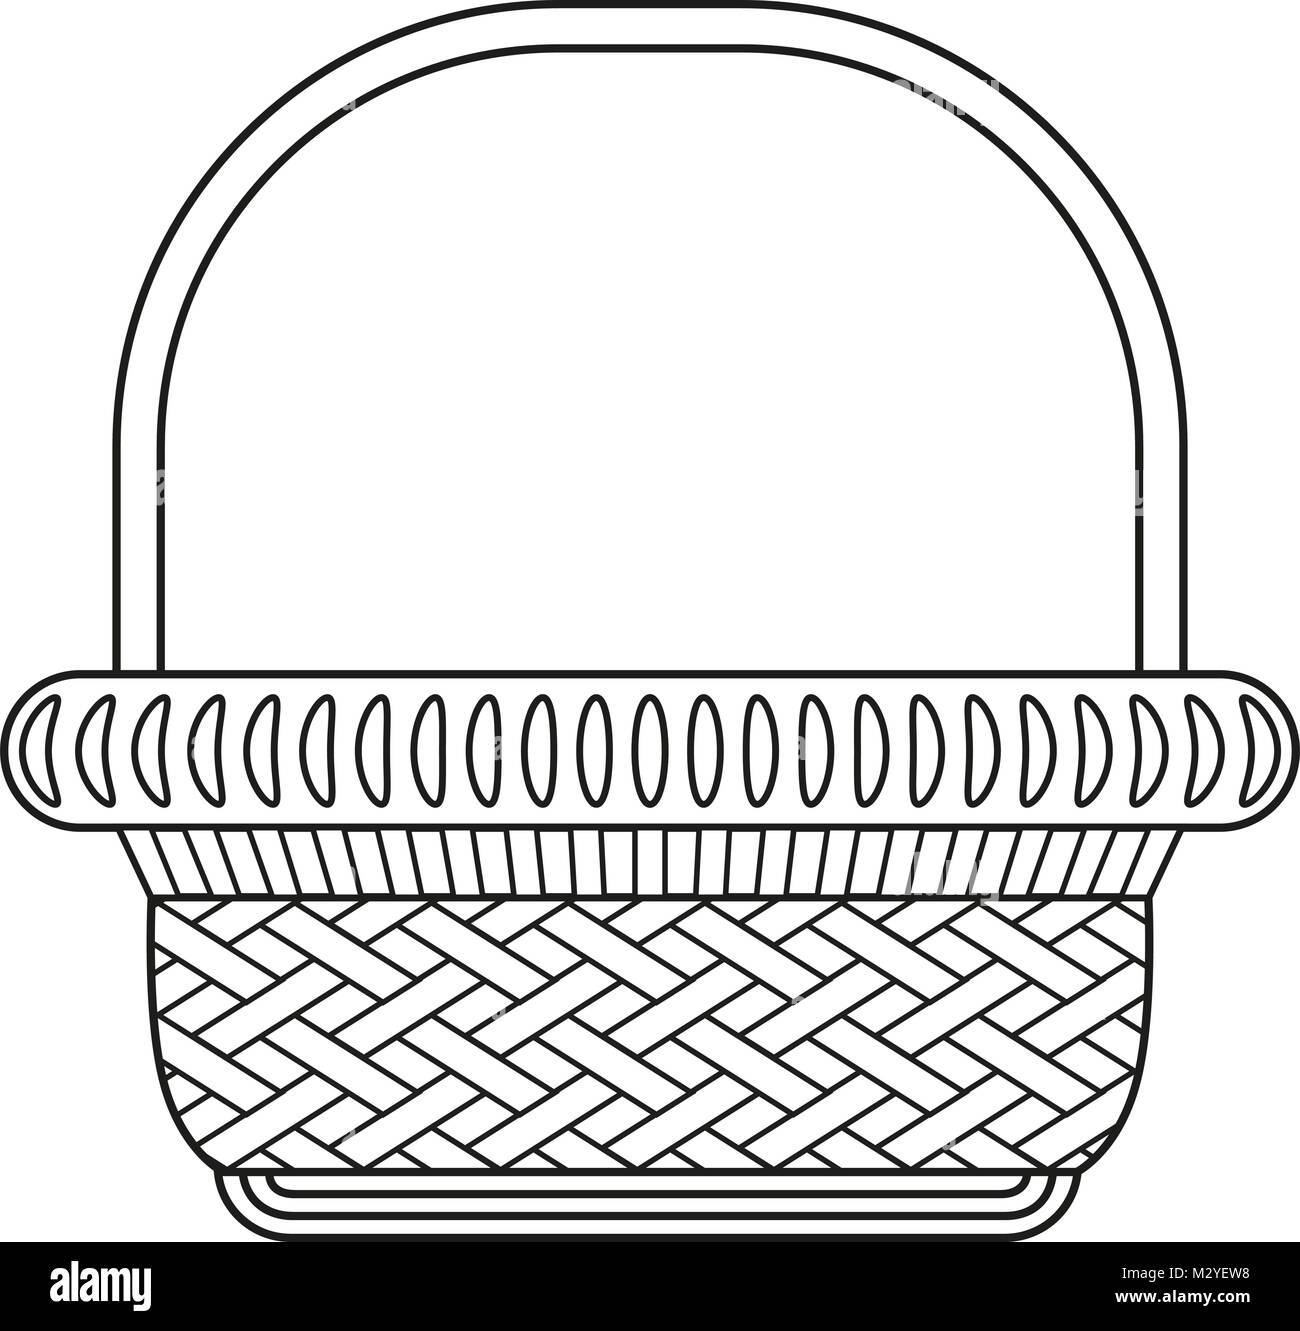 Line art black and white wicker basket shopping cart icon poster ...